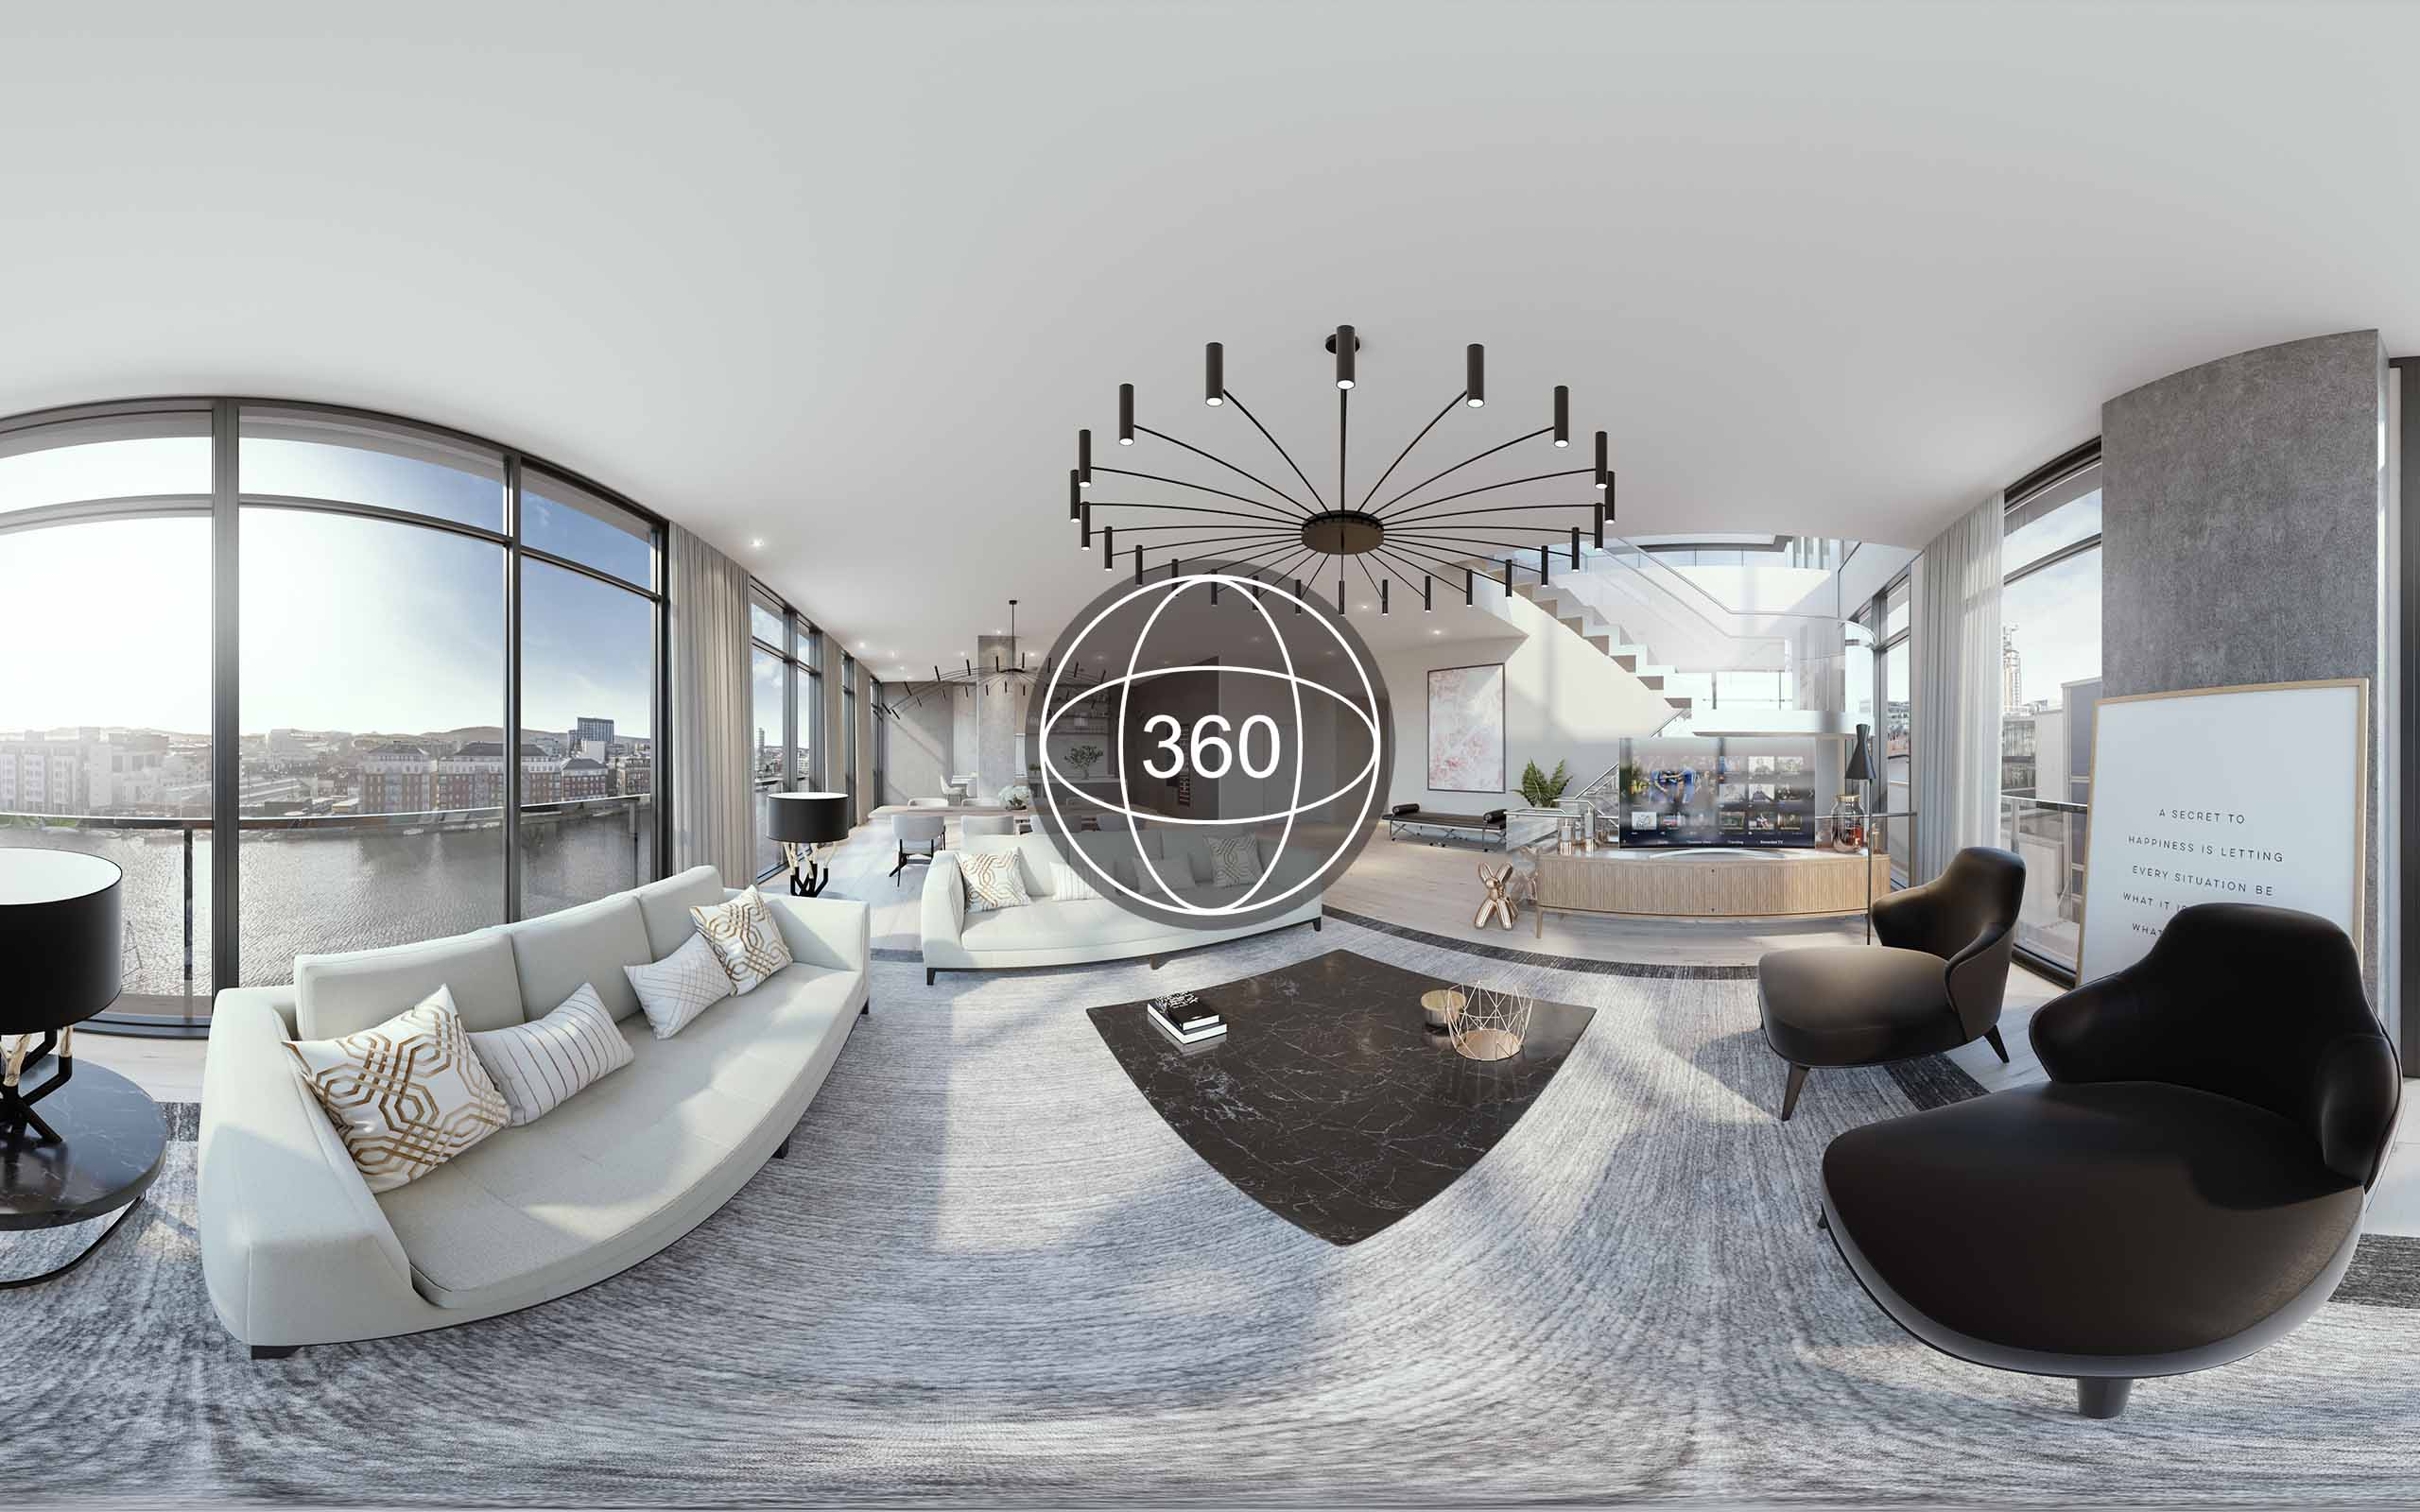 Off plans 360 virtual tour of Hanover Quay luxury apartments in Dublin 2.